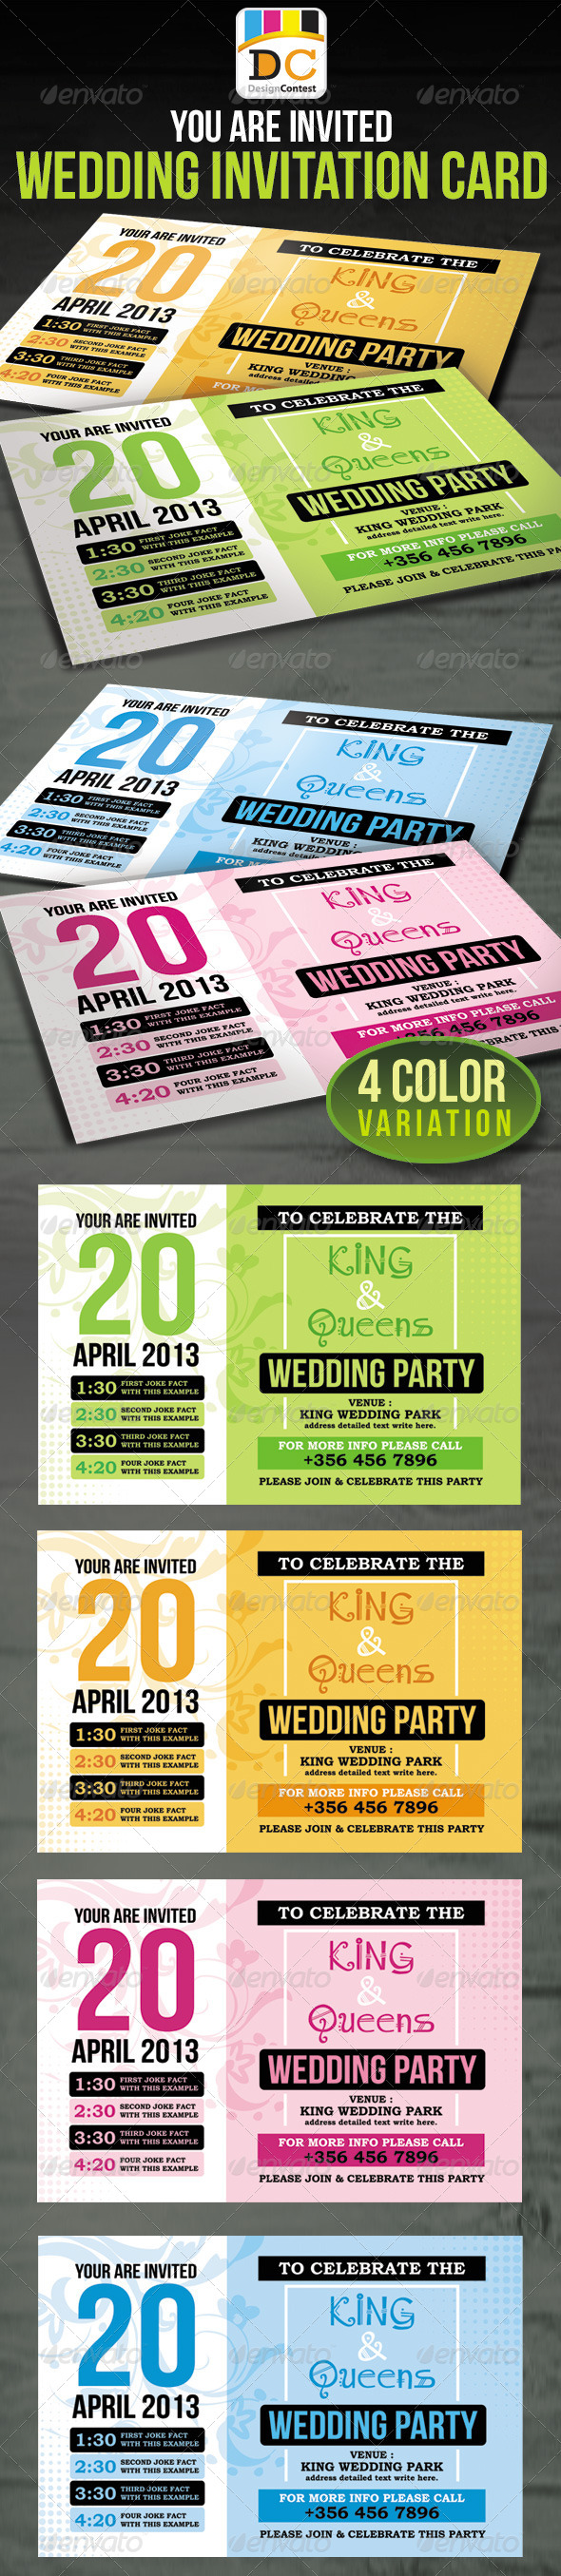 Wedding Party Invitation Card - Weddings Cards & Invites